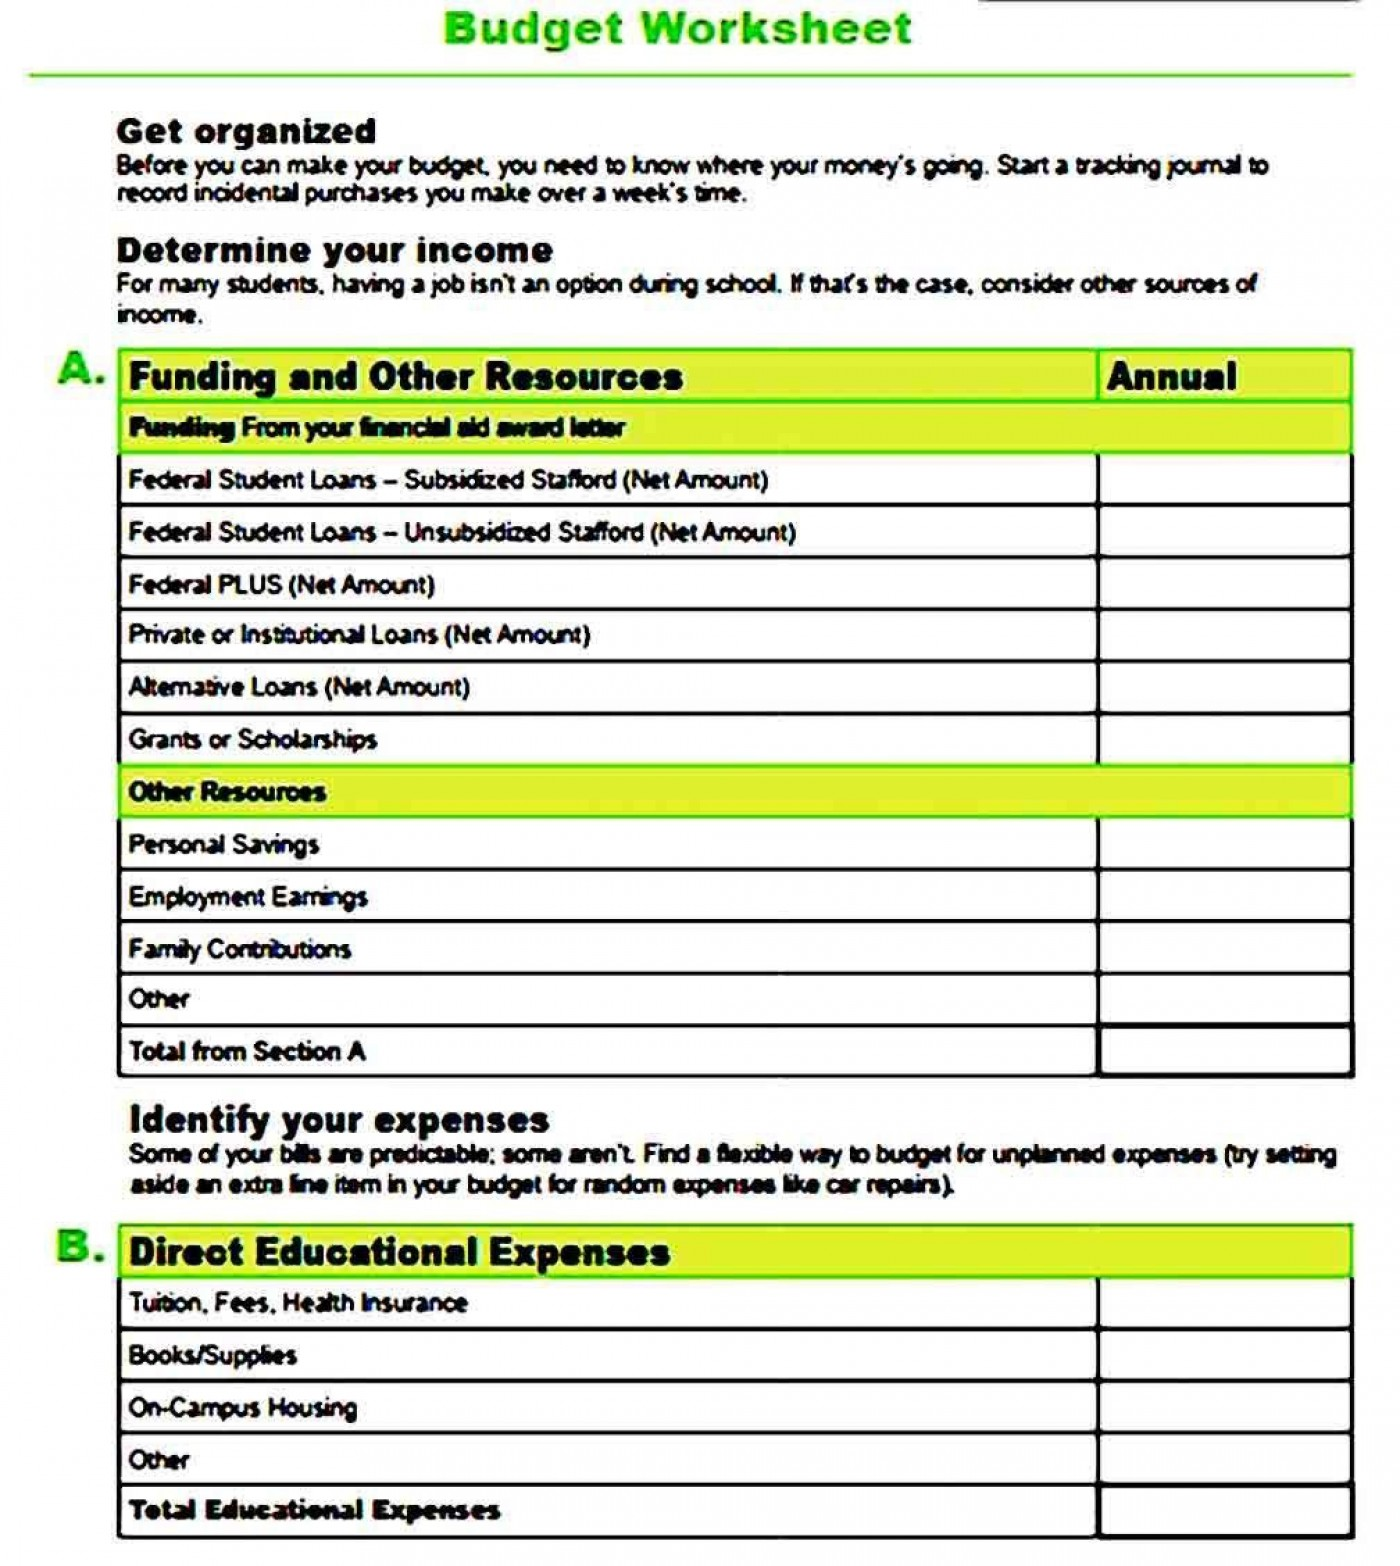 001 Fearsome Line Item Budget Sample Image  Church For Grant Proposal Format1400